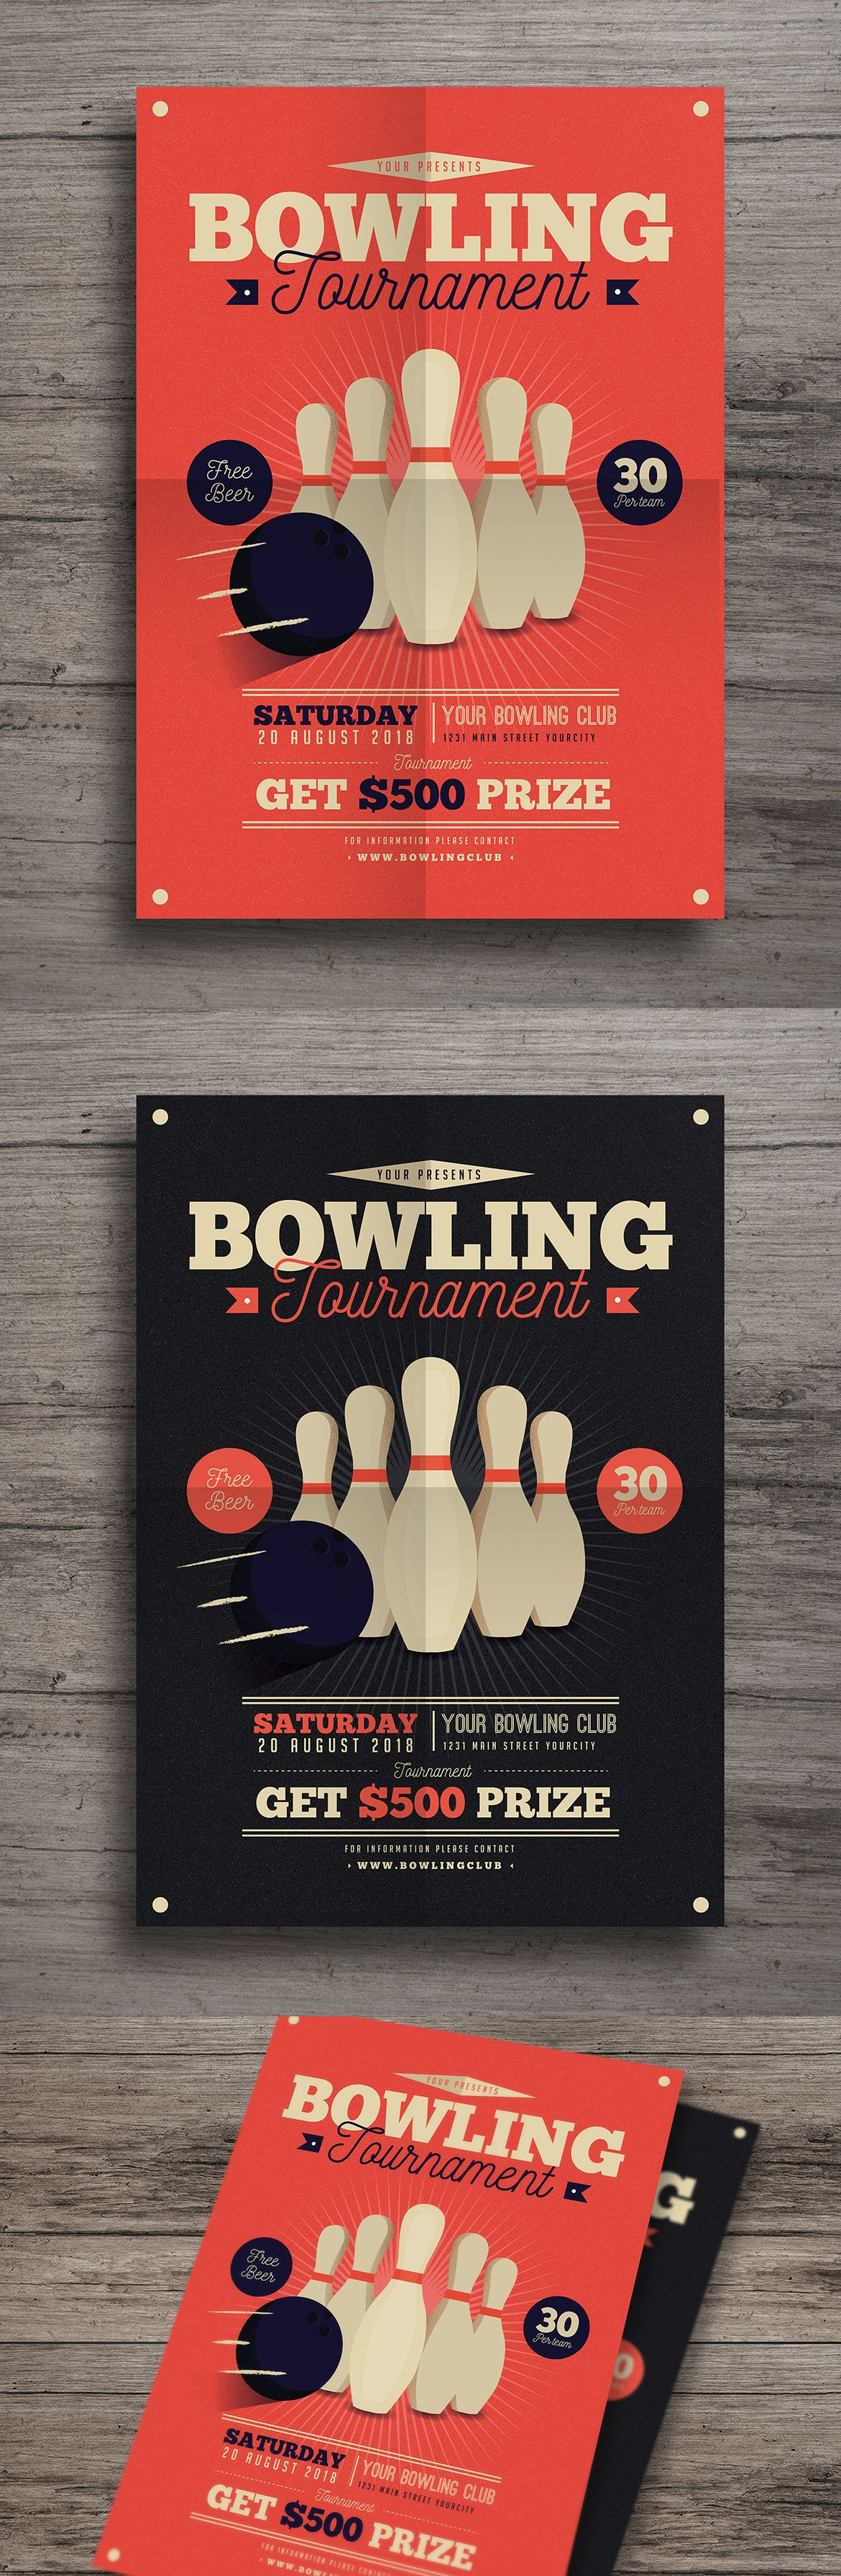 Vintage Bowling Tournament Flyer Template Ai Psd  Flyer Design